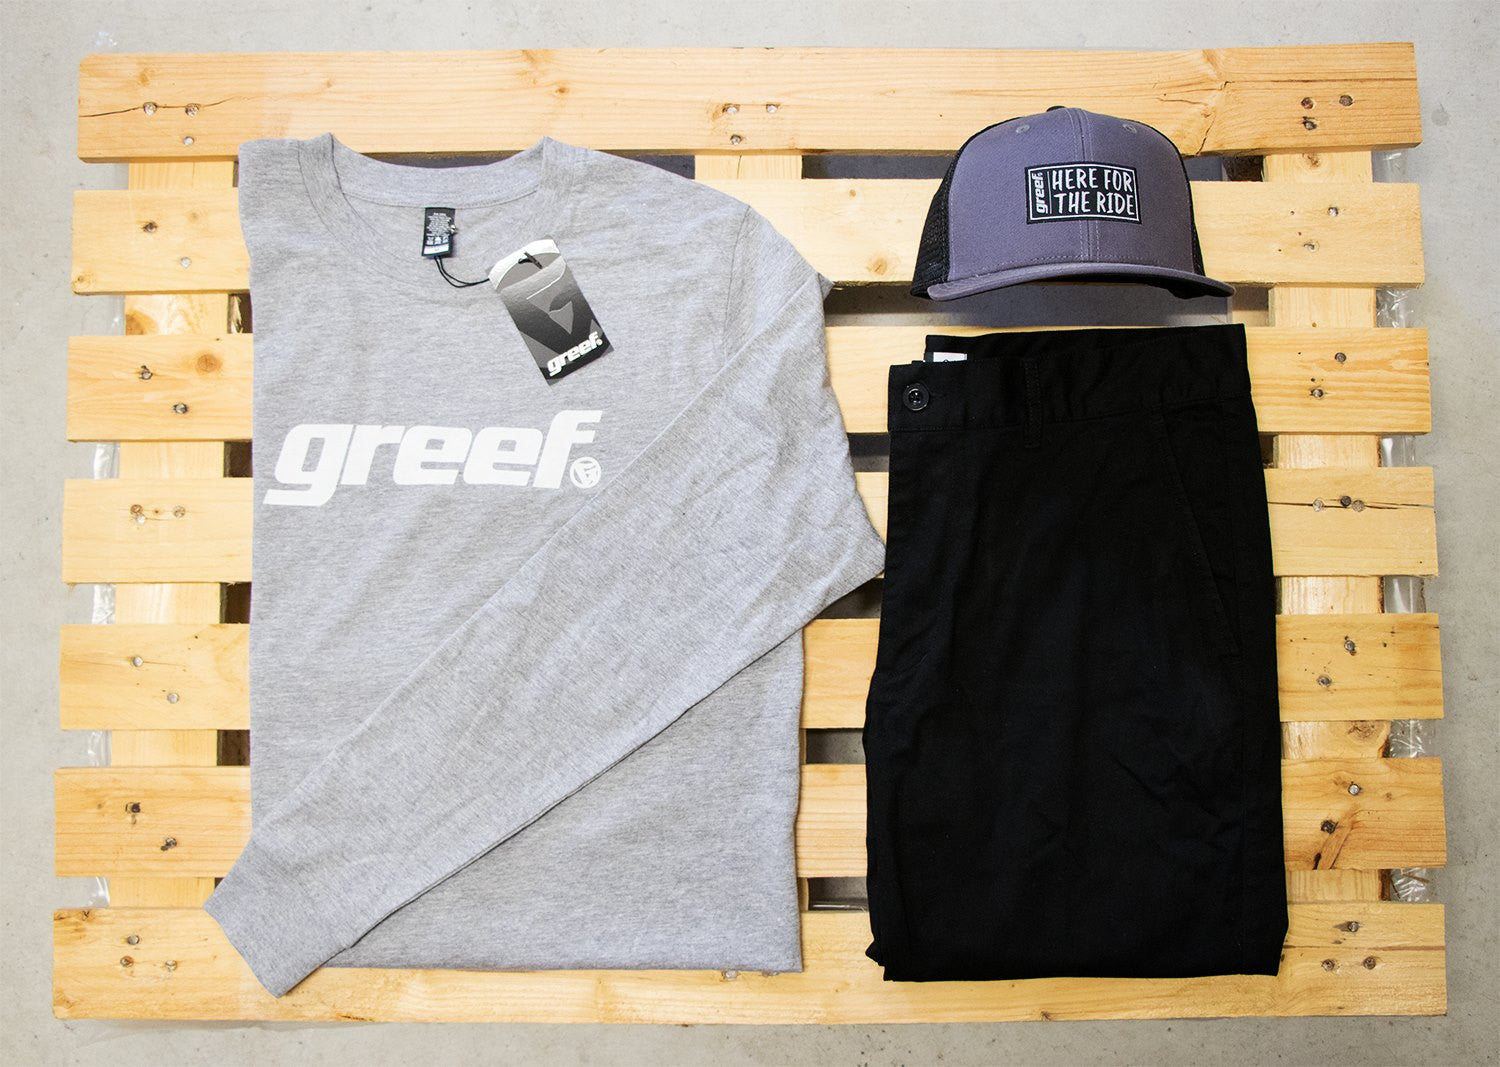 Greef Clothing Giveaway